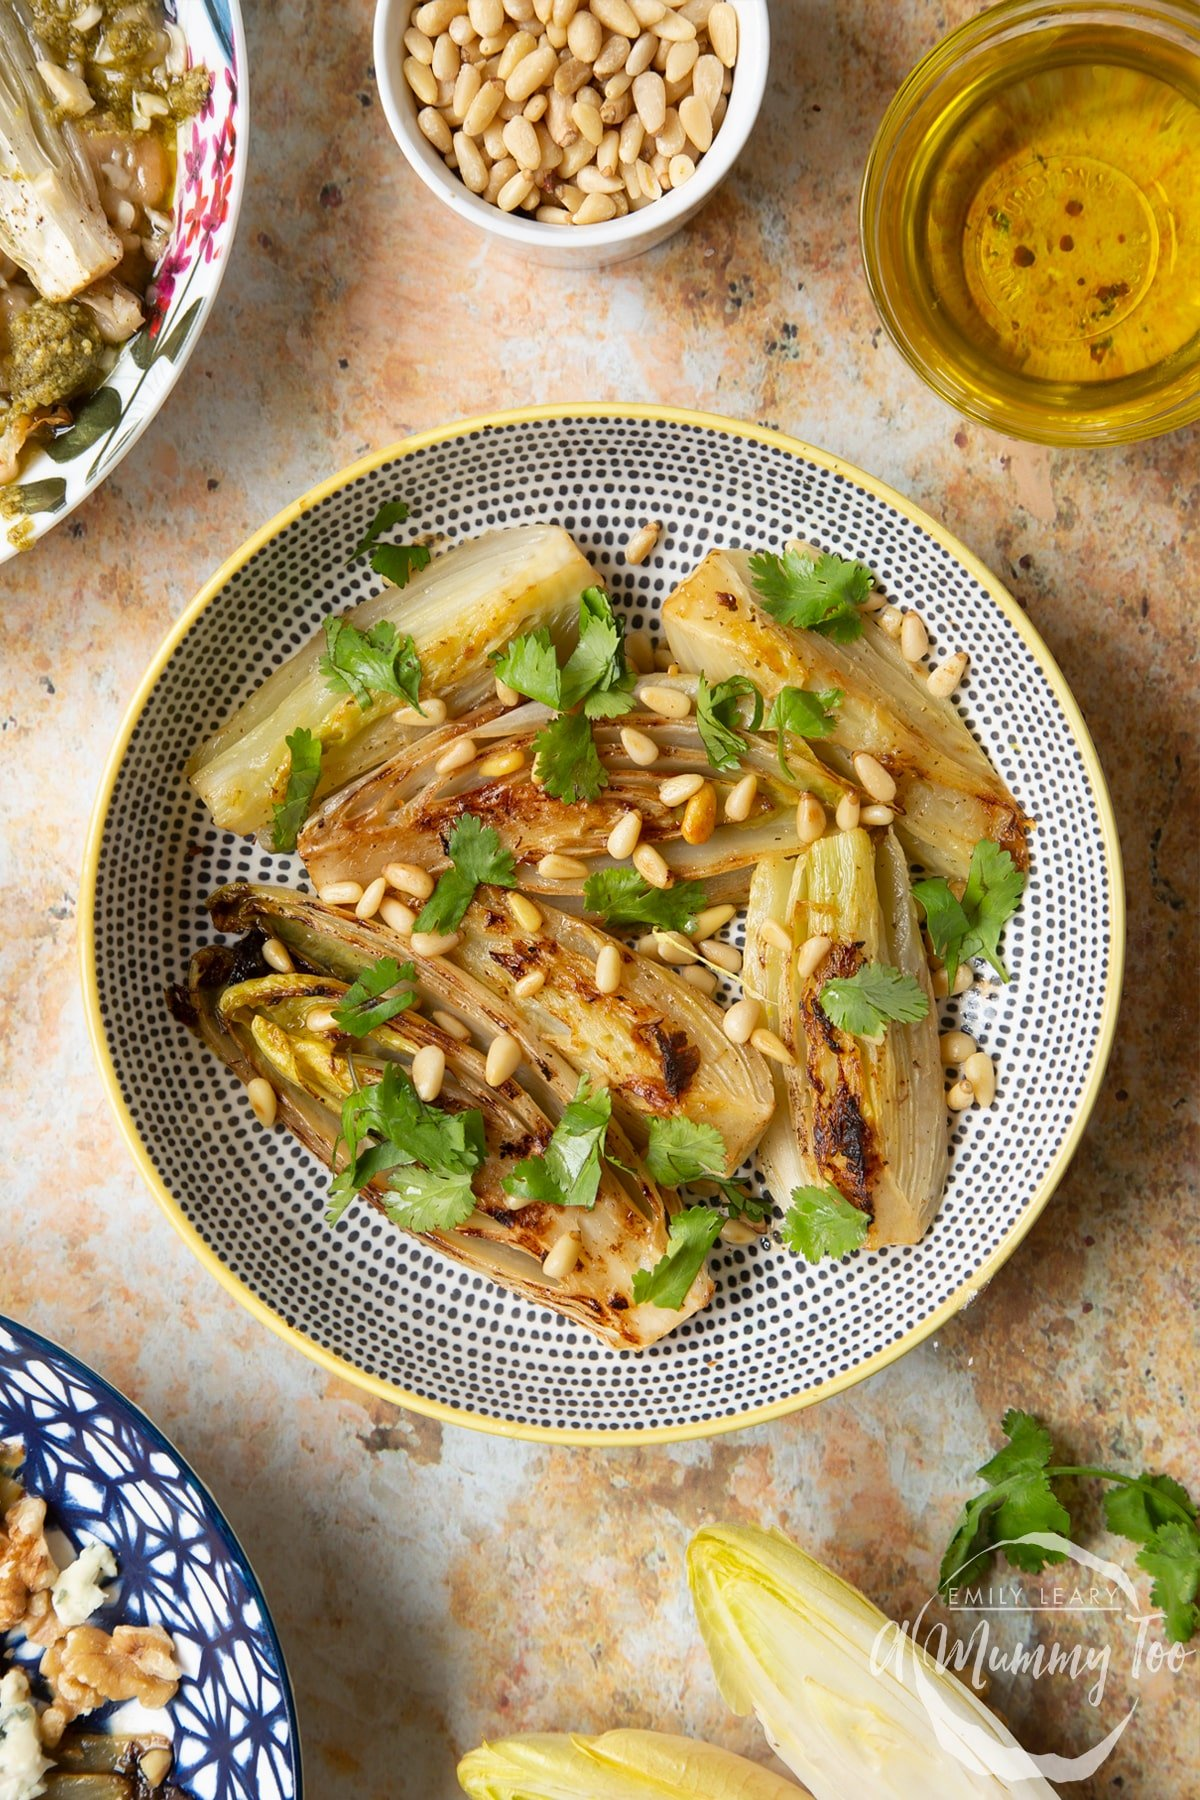 Braised chicory in a bowl with fennel, pine nuts and coriander.